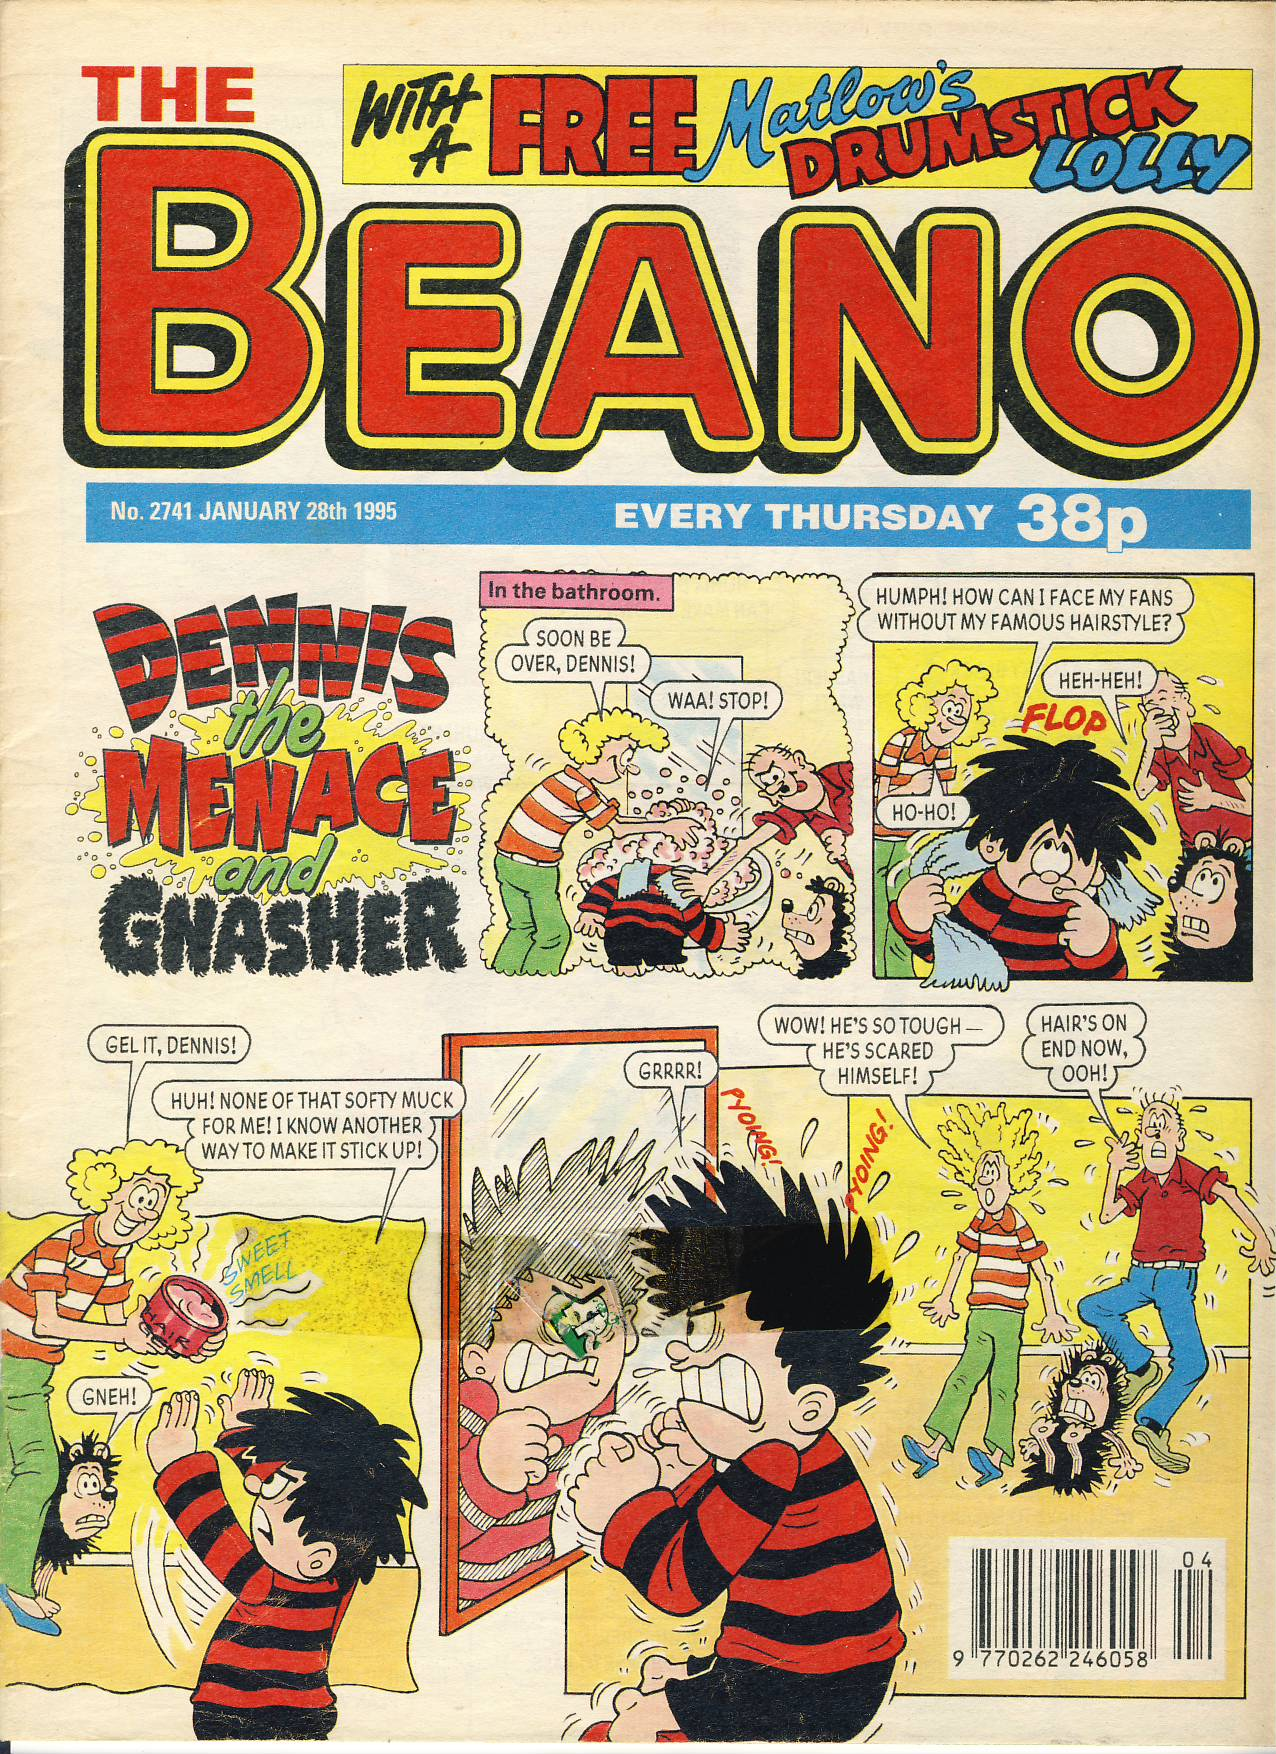 1995 January 28th BEANO vintage comic Good Gift Christmas Present Birthday Anniversary ref220 a pre-owned item in very good read condition.